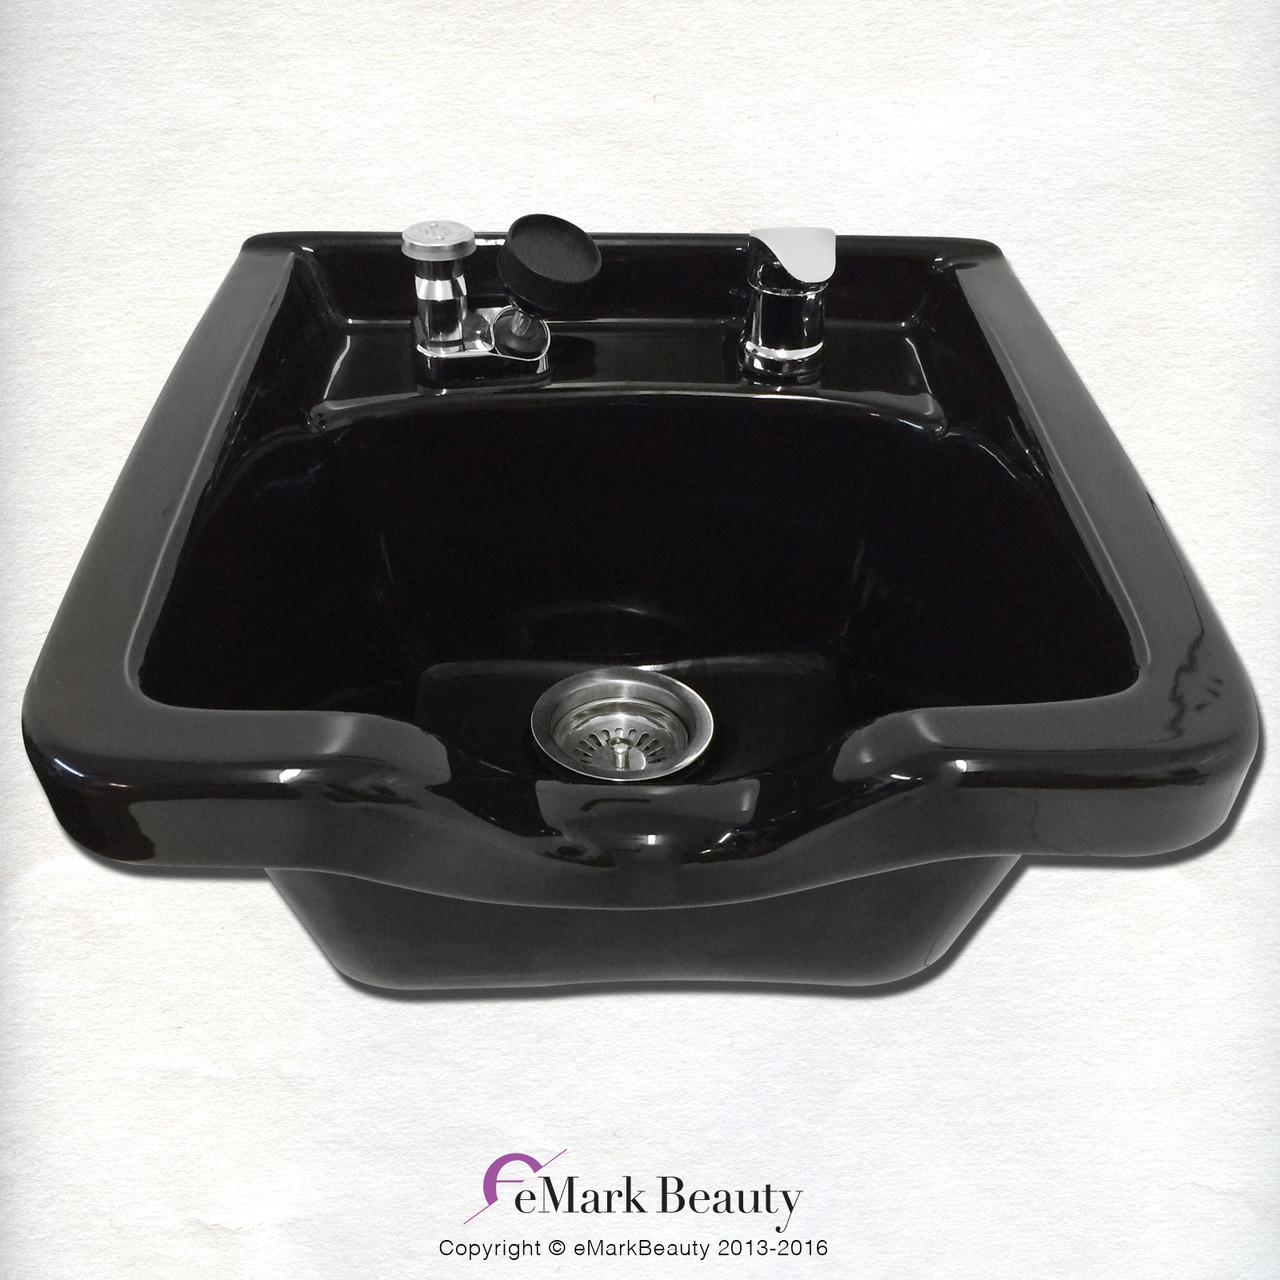 eMark Square Black ABS Plastic Shampoo Bowl for Salons and Barbershops TLC-B11